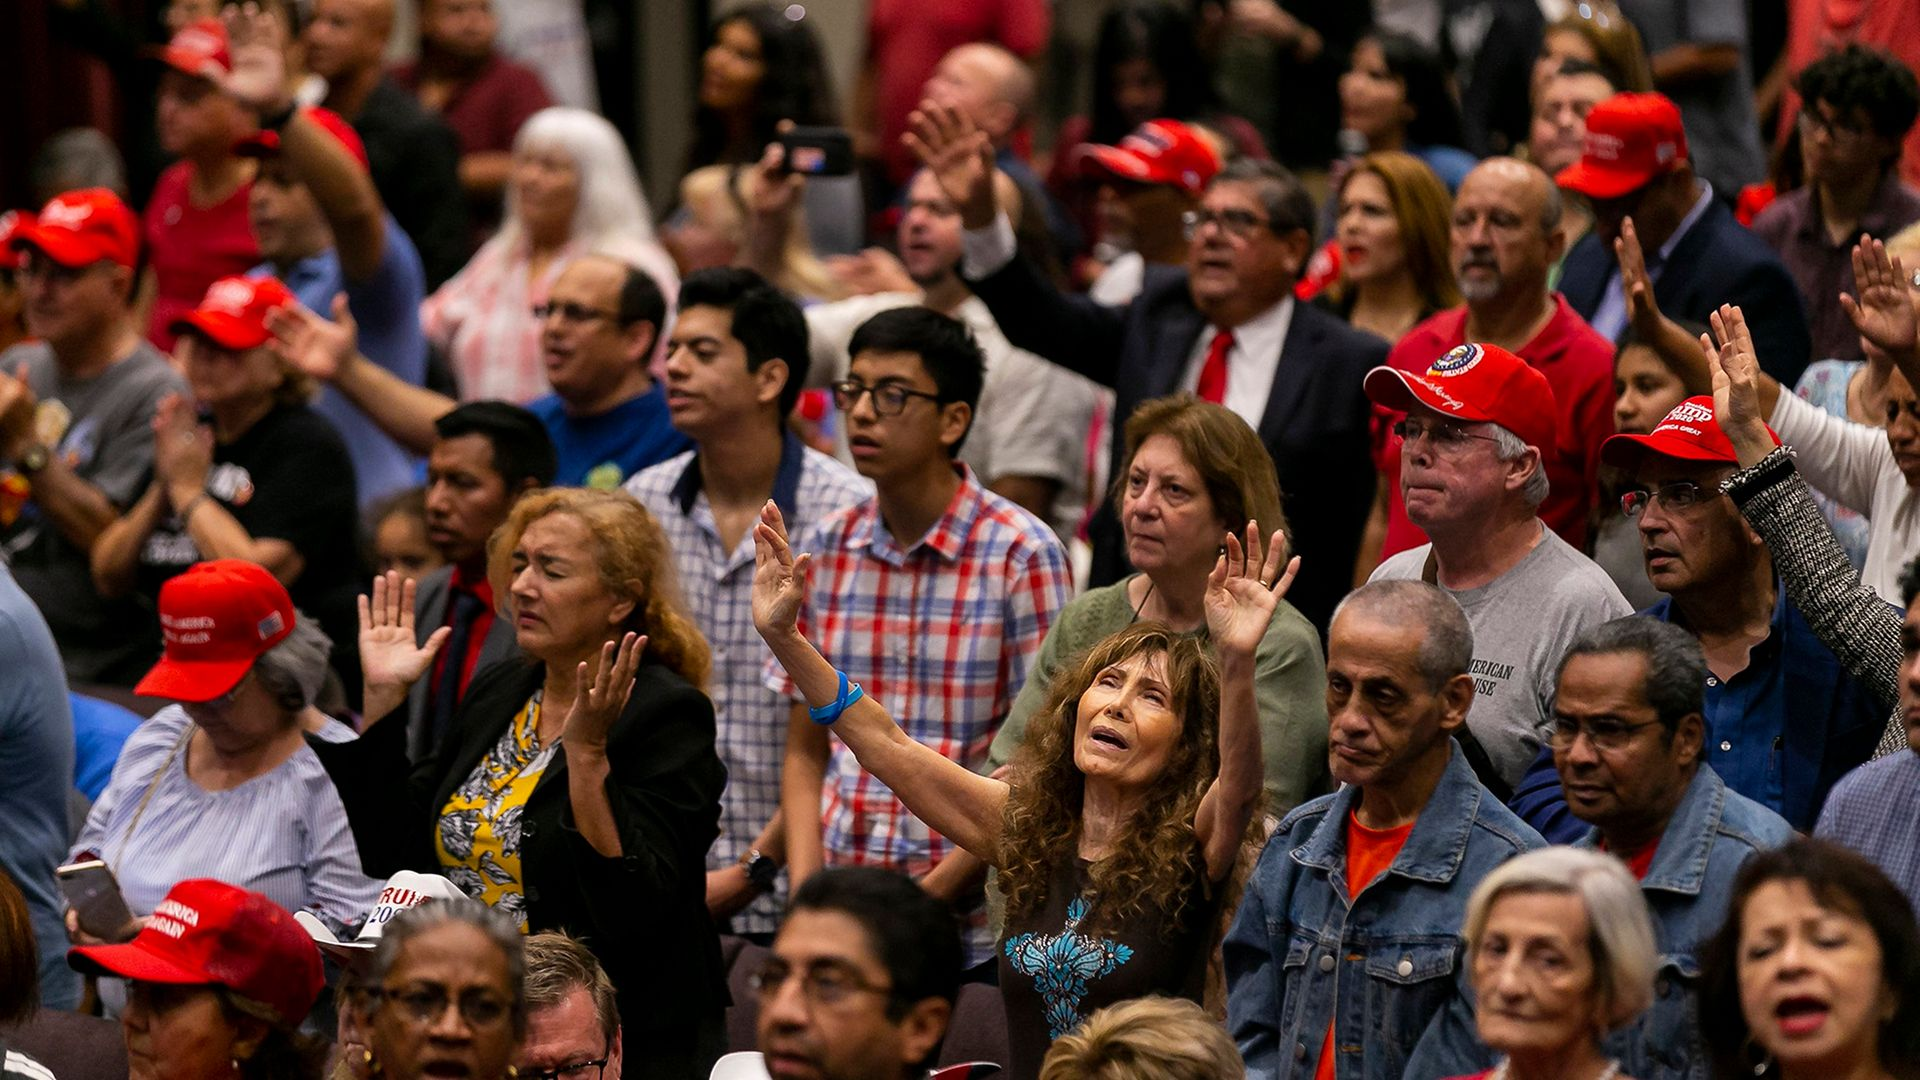 """Attendees pray before President Donald Trump speaks at an """";Evangelicals for Trump"""" campaign rally in Miami. - Credit: Miami Herald/Getty Images"""